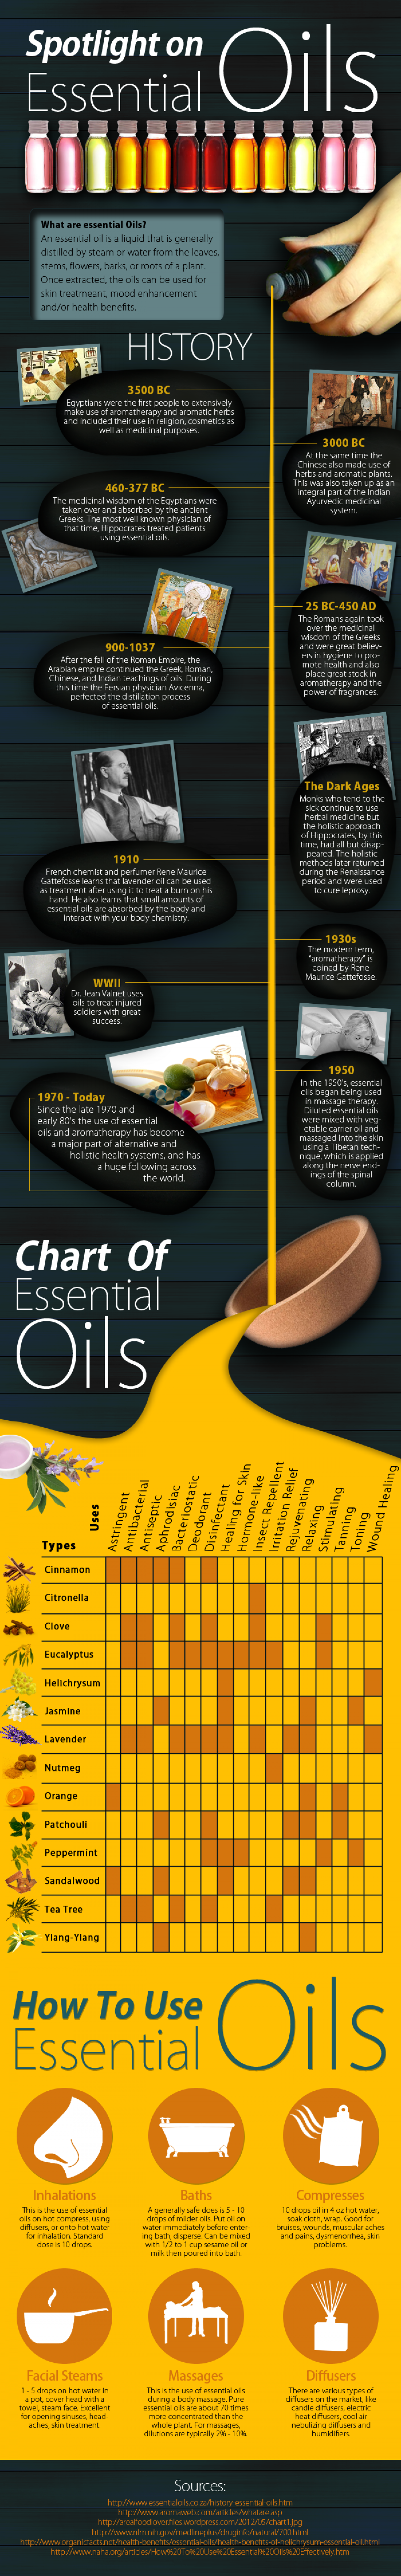 Spotlight on Essential Oils Infographic